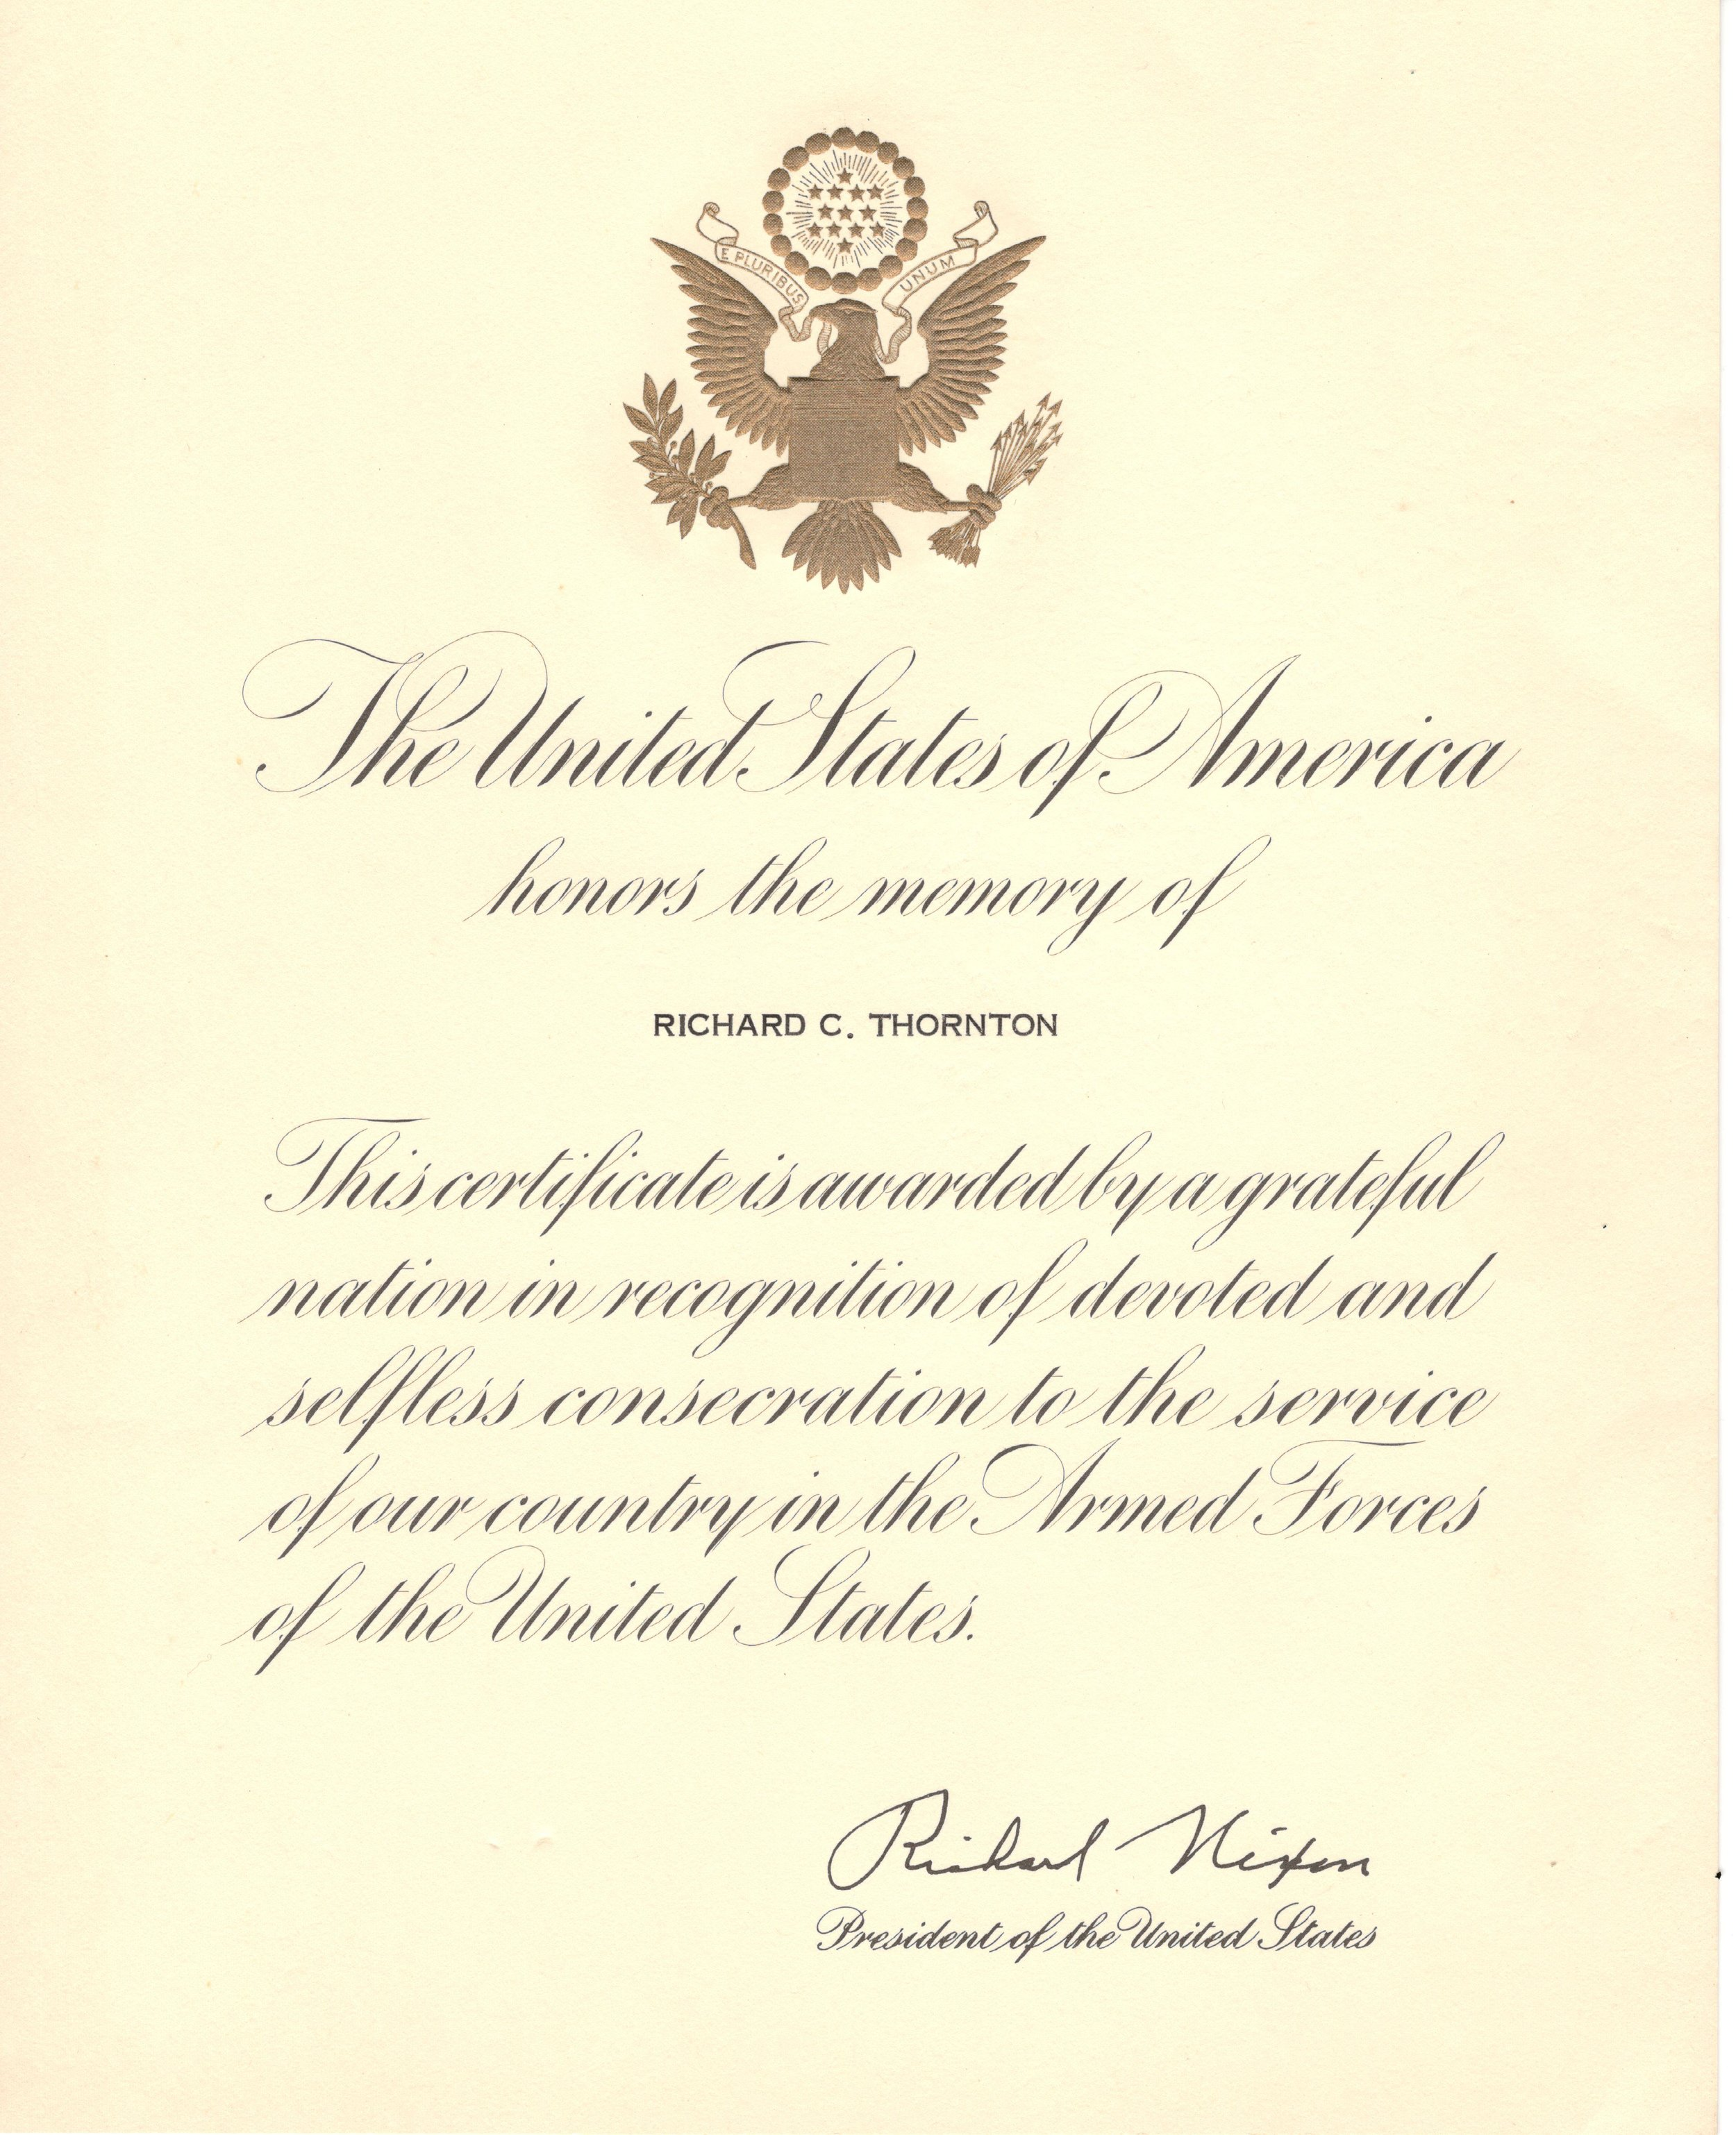 Memorial Certificate for Richard Thornton signed by Richard Nixon.